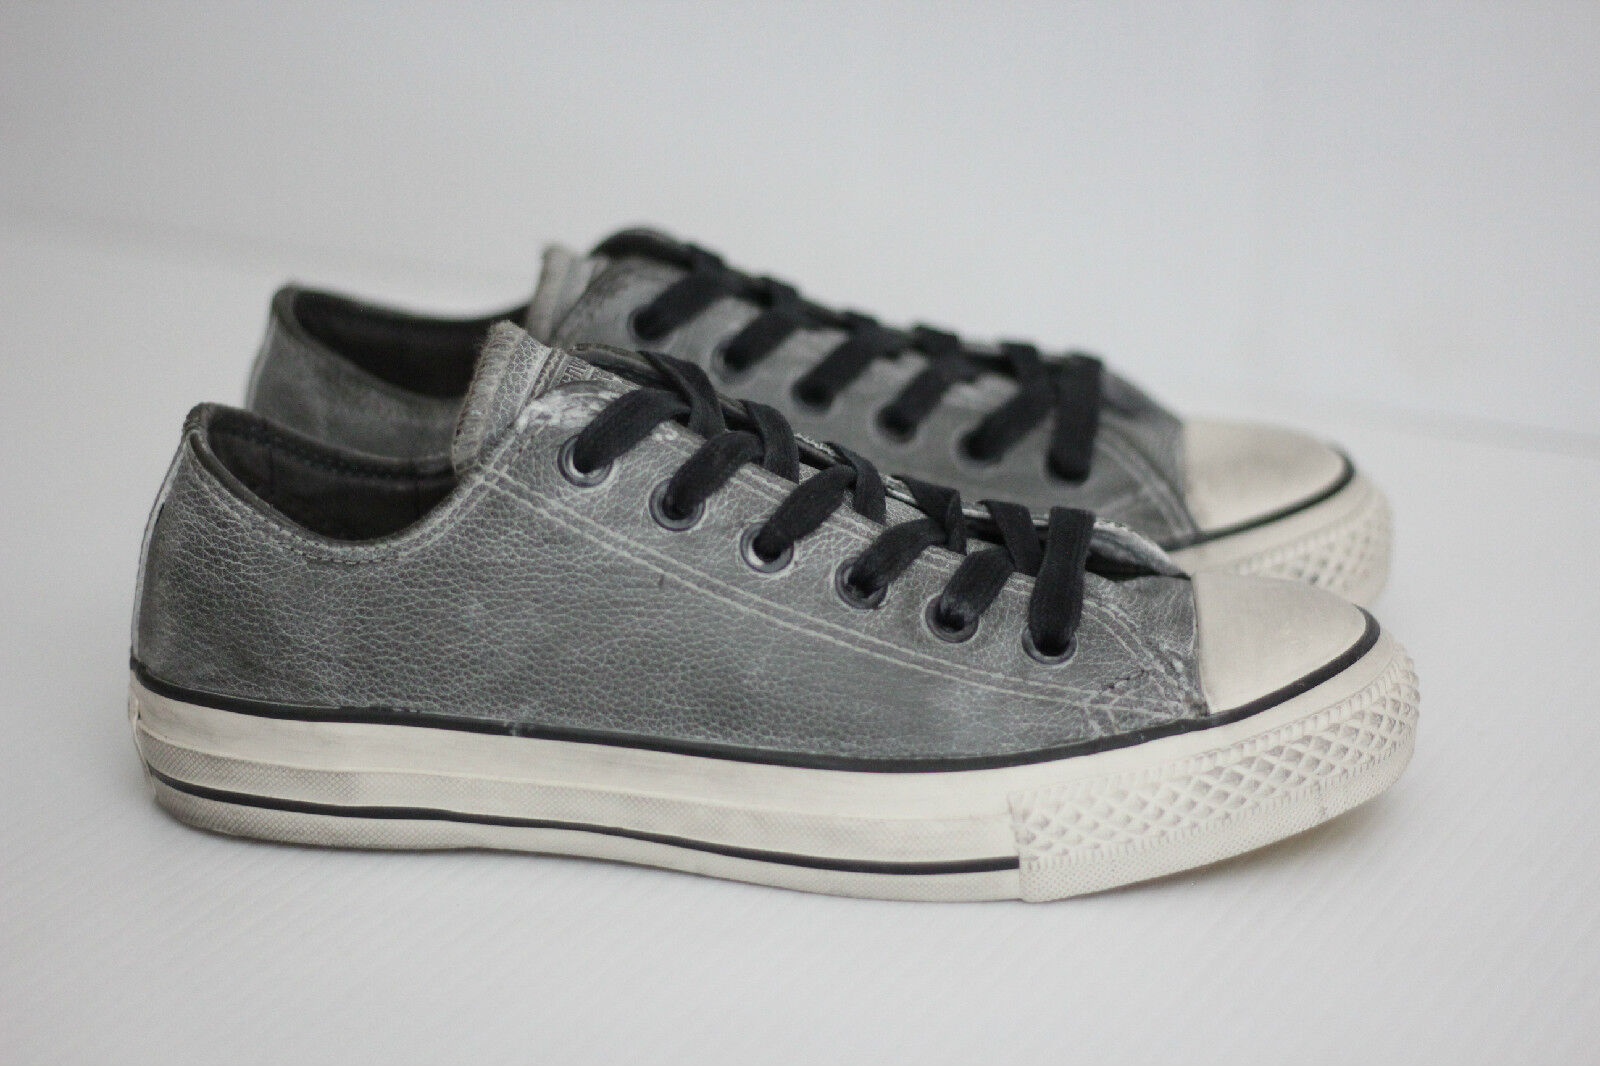 All Star Converse X John Varvatos Leather Low Top scarpe da ginnastica - nero Beluga 6 (W3)